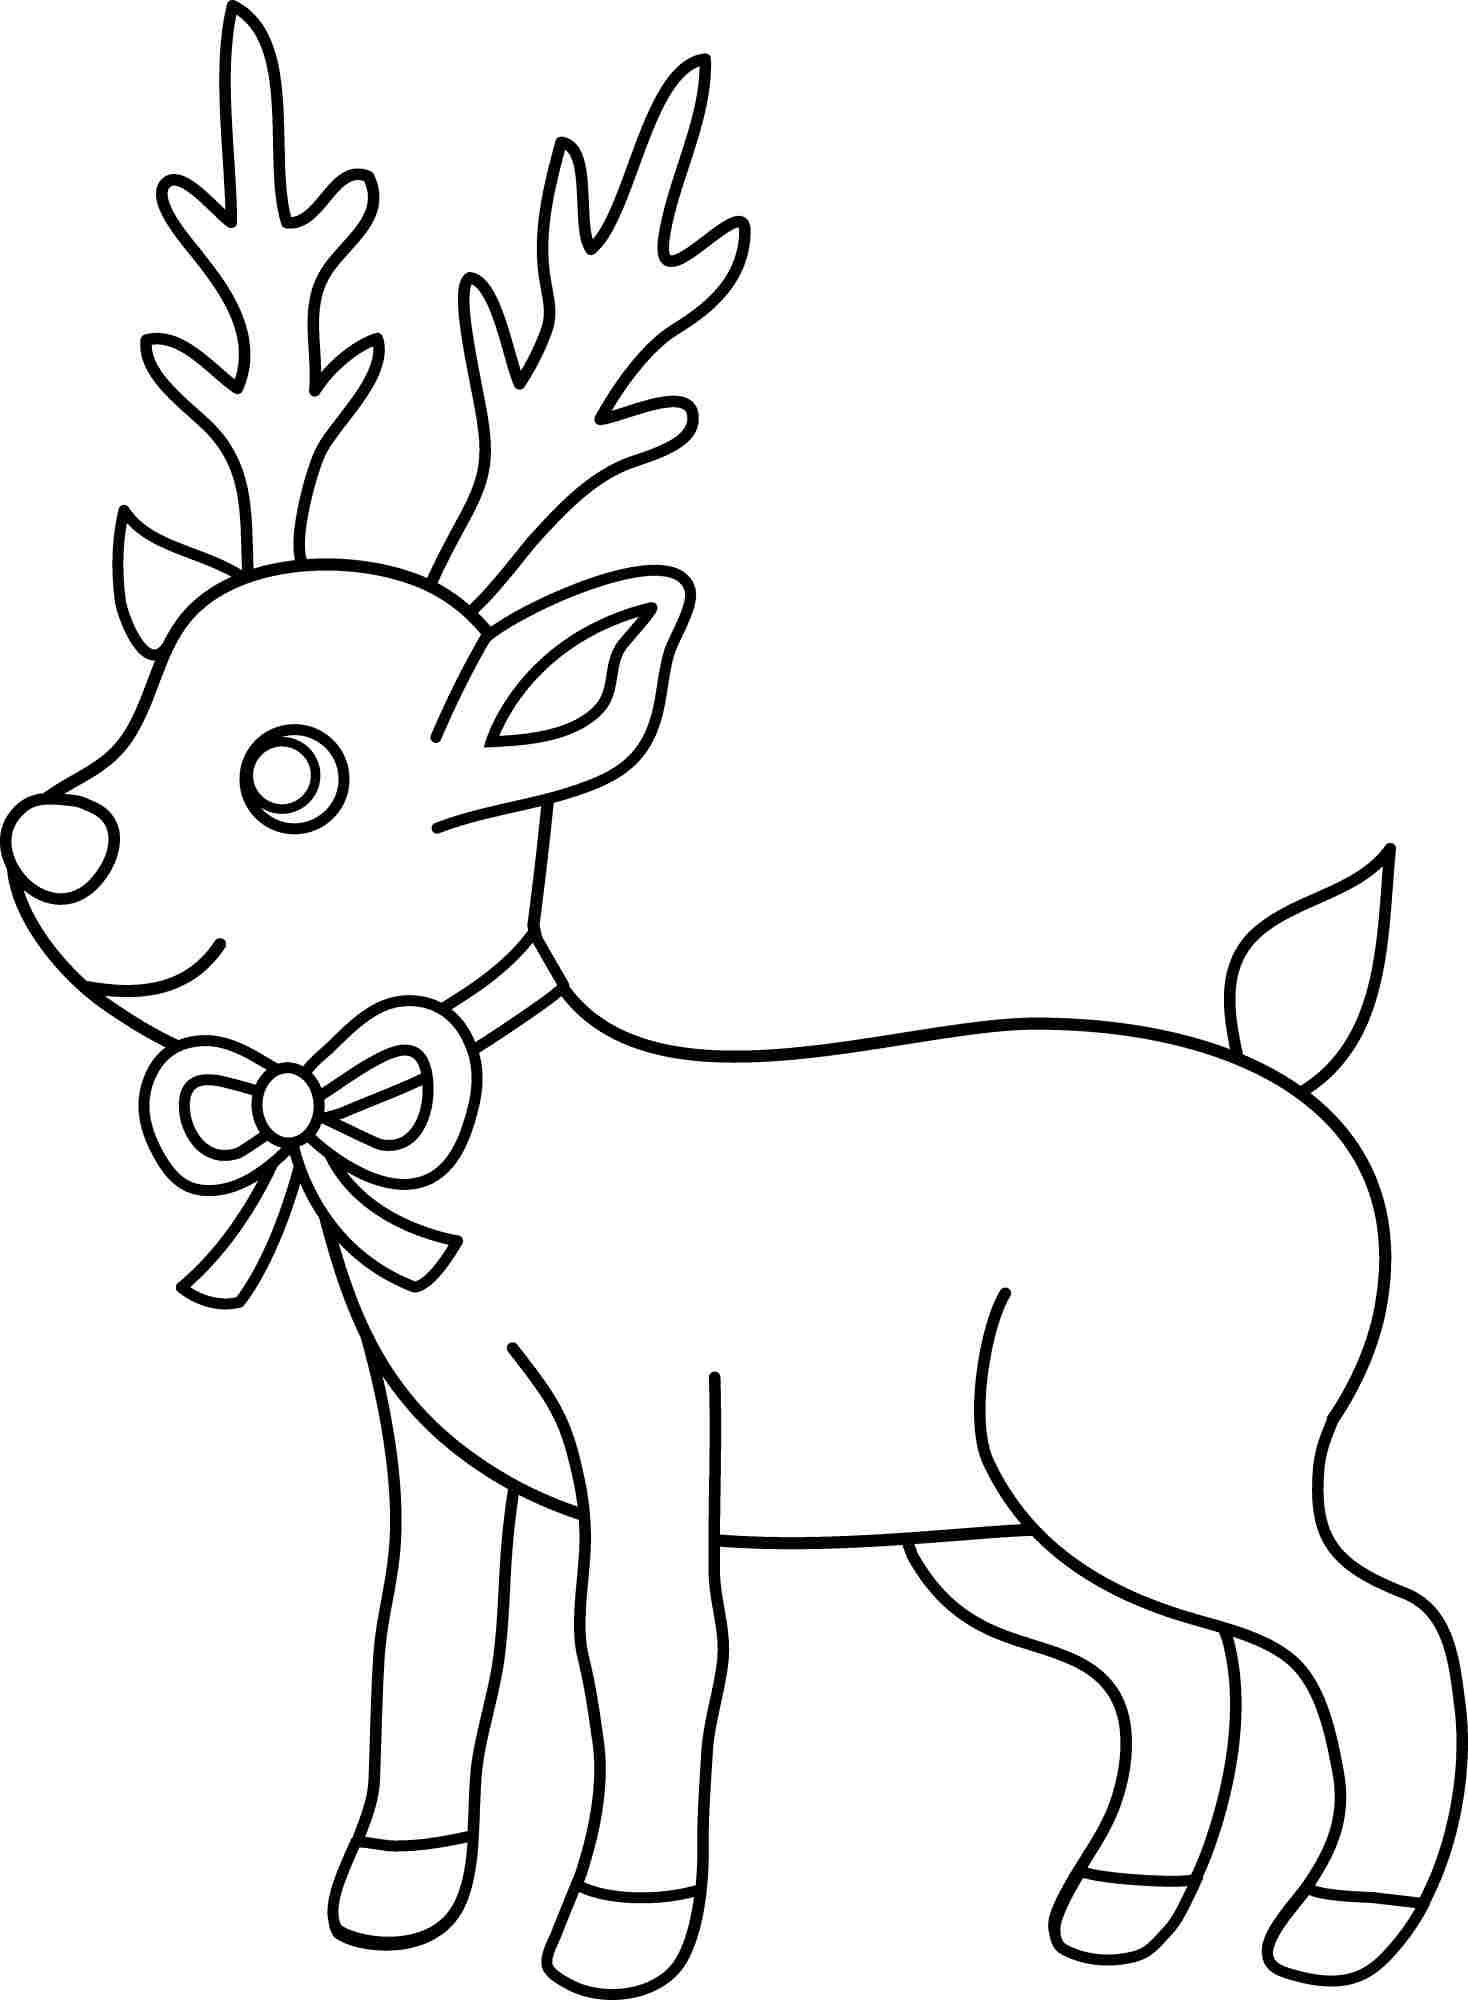 Christmas Coloring Pages Easy With For Kids Has Baby Jesus Ornaments Id